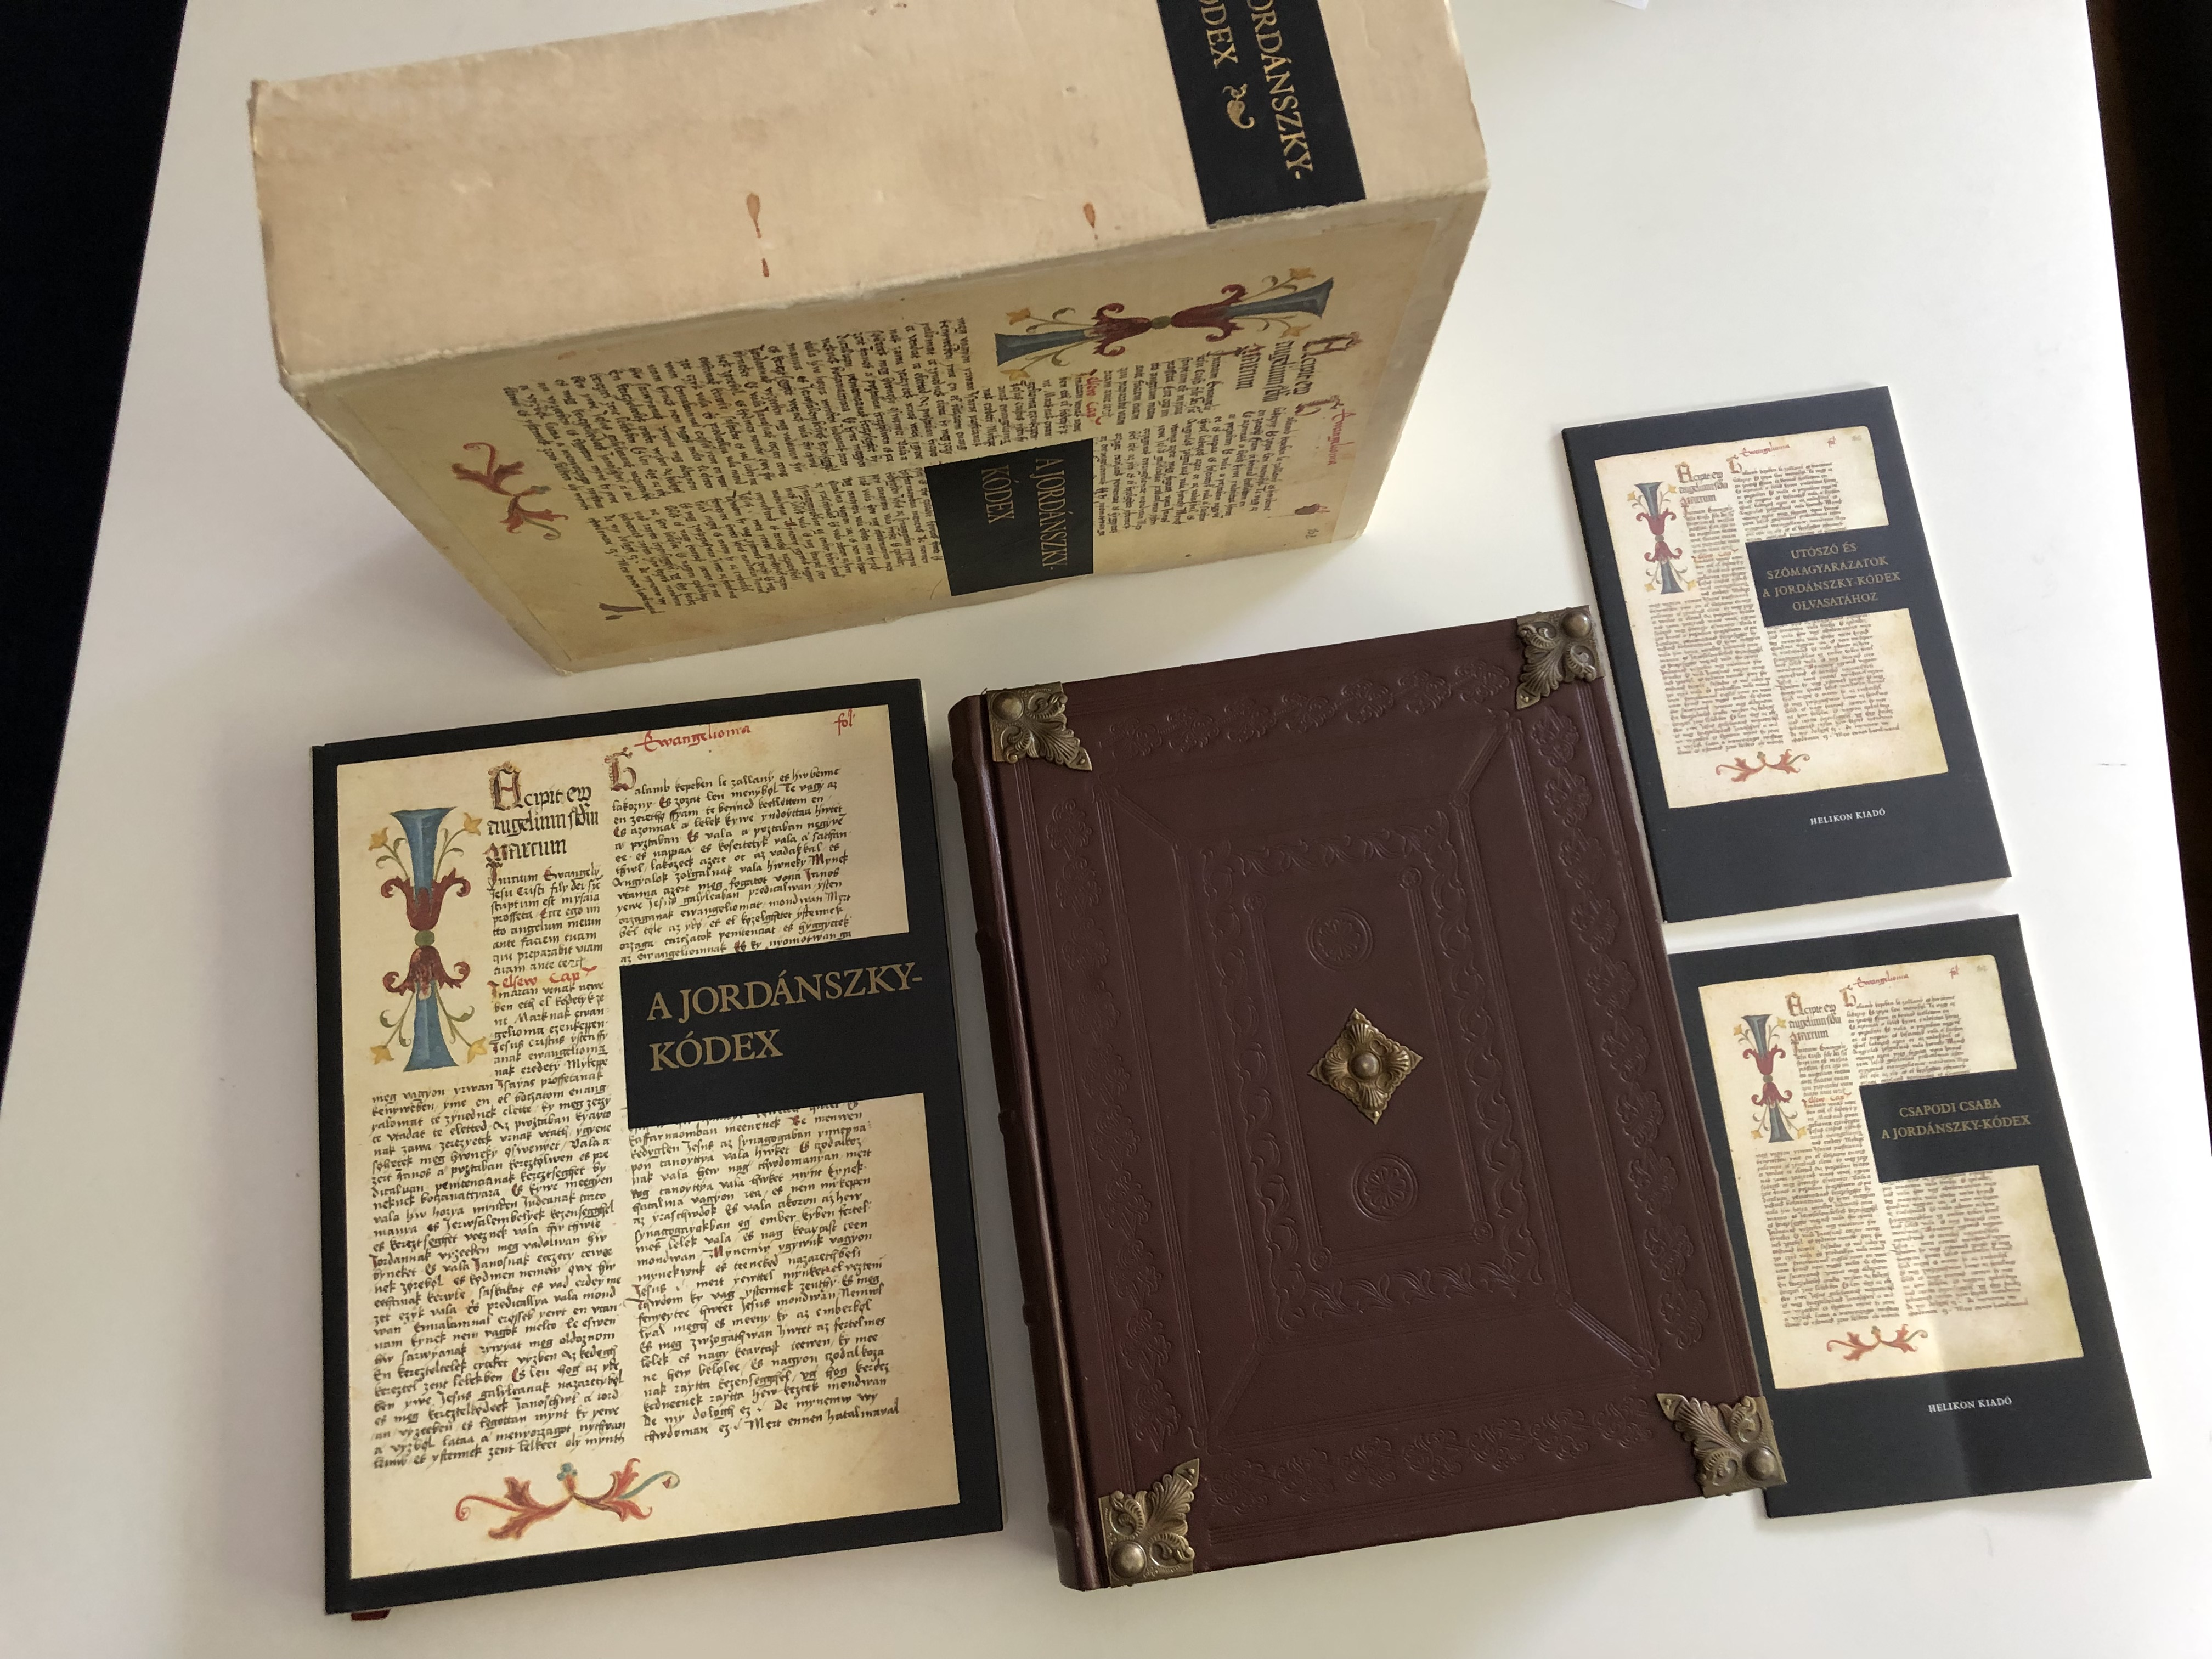 a-jord-nszky-k-dex-1516-1519-3-book-set-hungarian-codex-reprint-containing-bible-translation-from-the-beginning-of-the-16th-century-transcription-of-the-codex-reading-help-and-essay-by-csaba-csapodi-helikon-kiad-3-.jpg